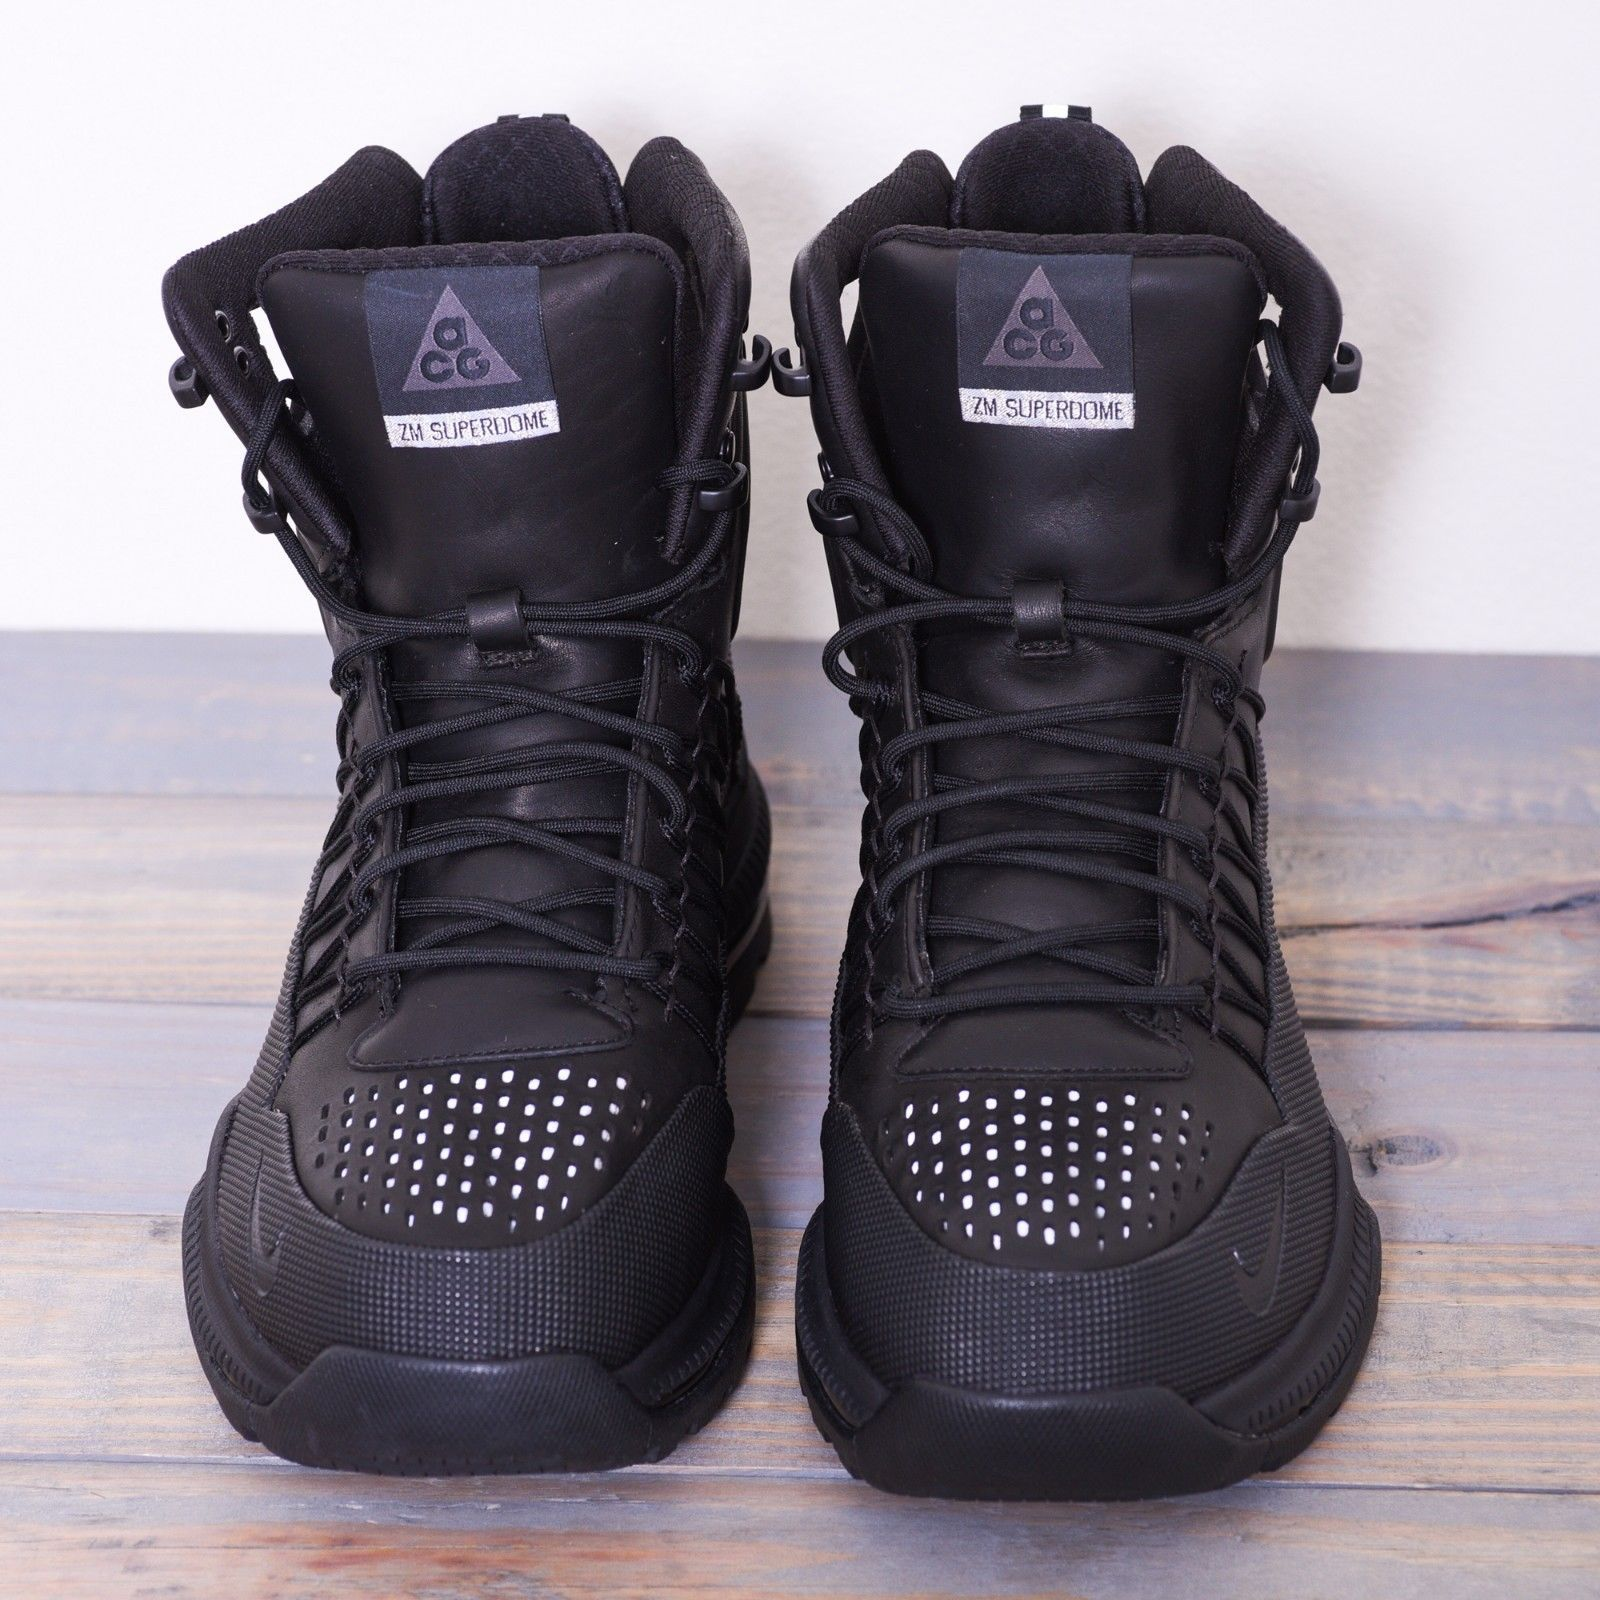 0255f347138 Nike ZM Superdome ACG Boots Black mens shoes size 9.5 US New in mint ...